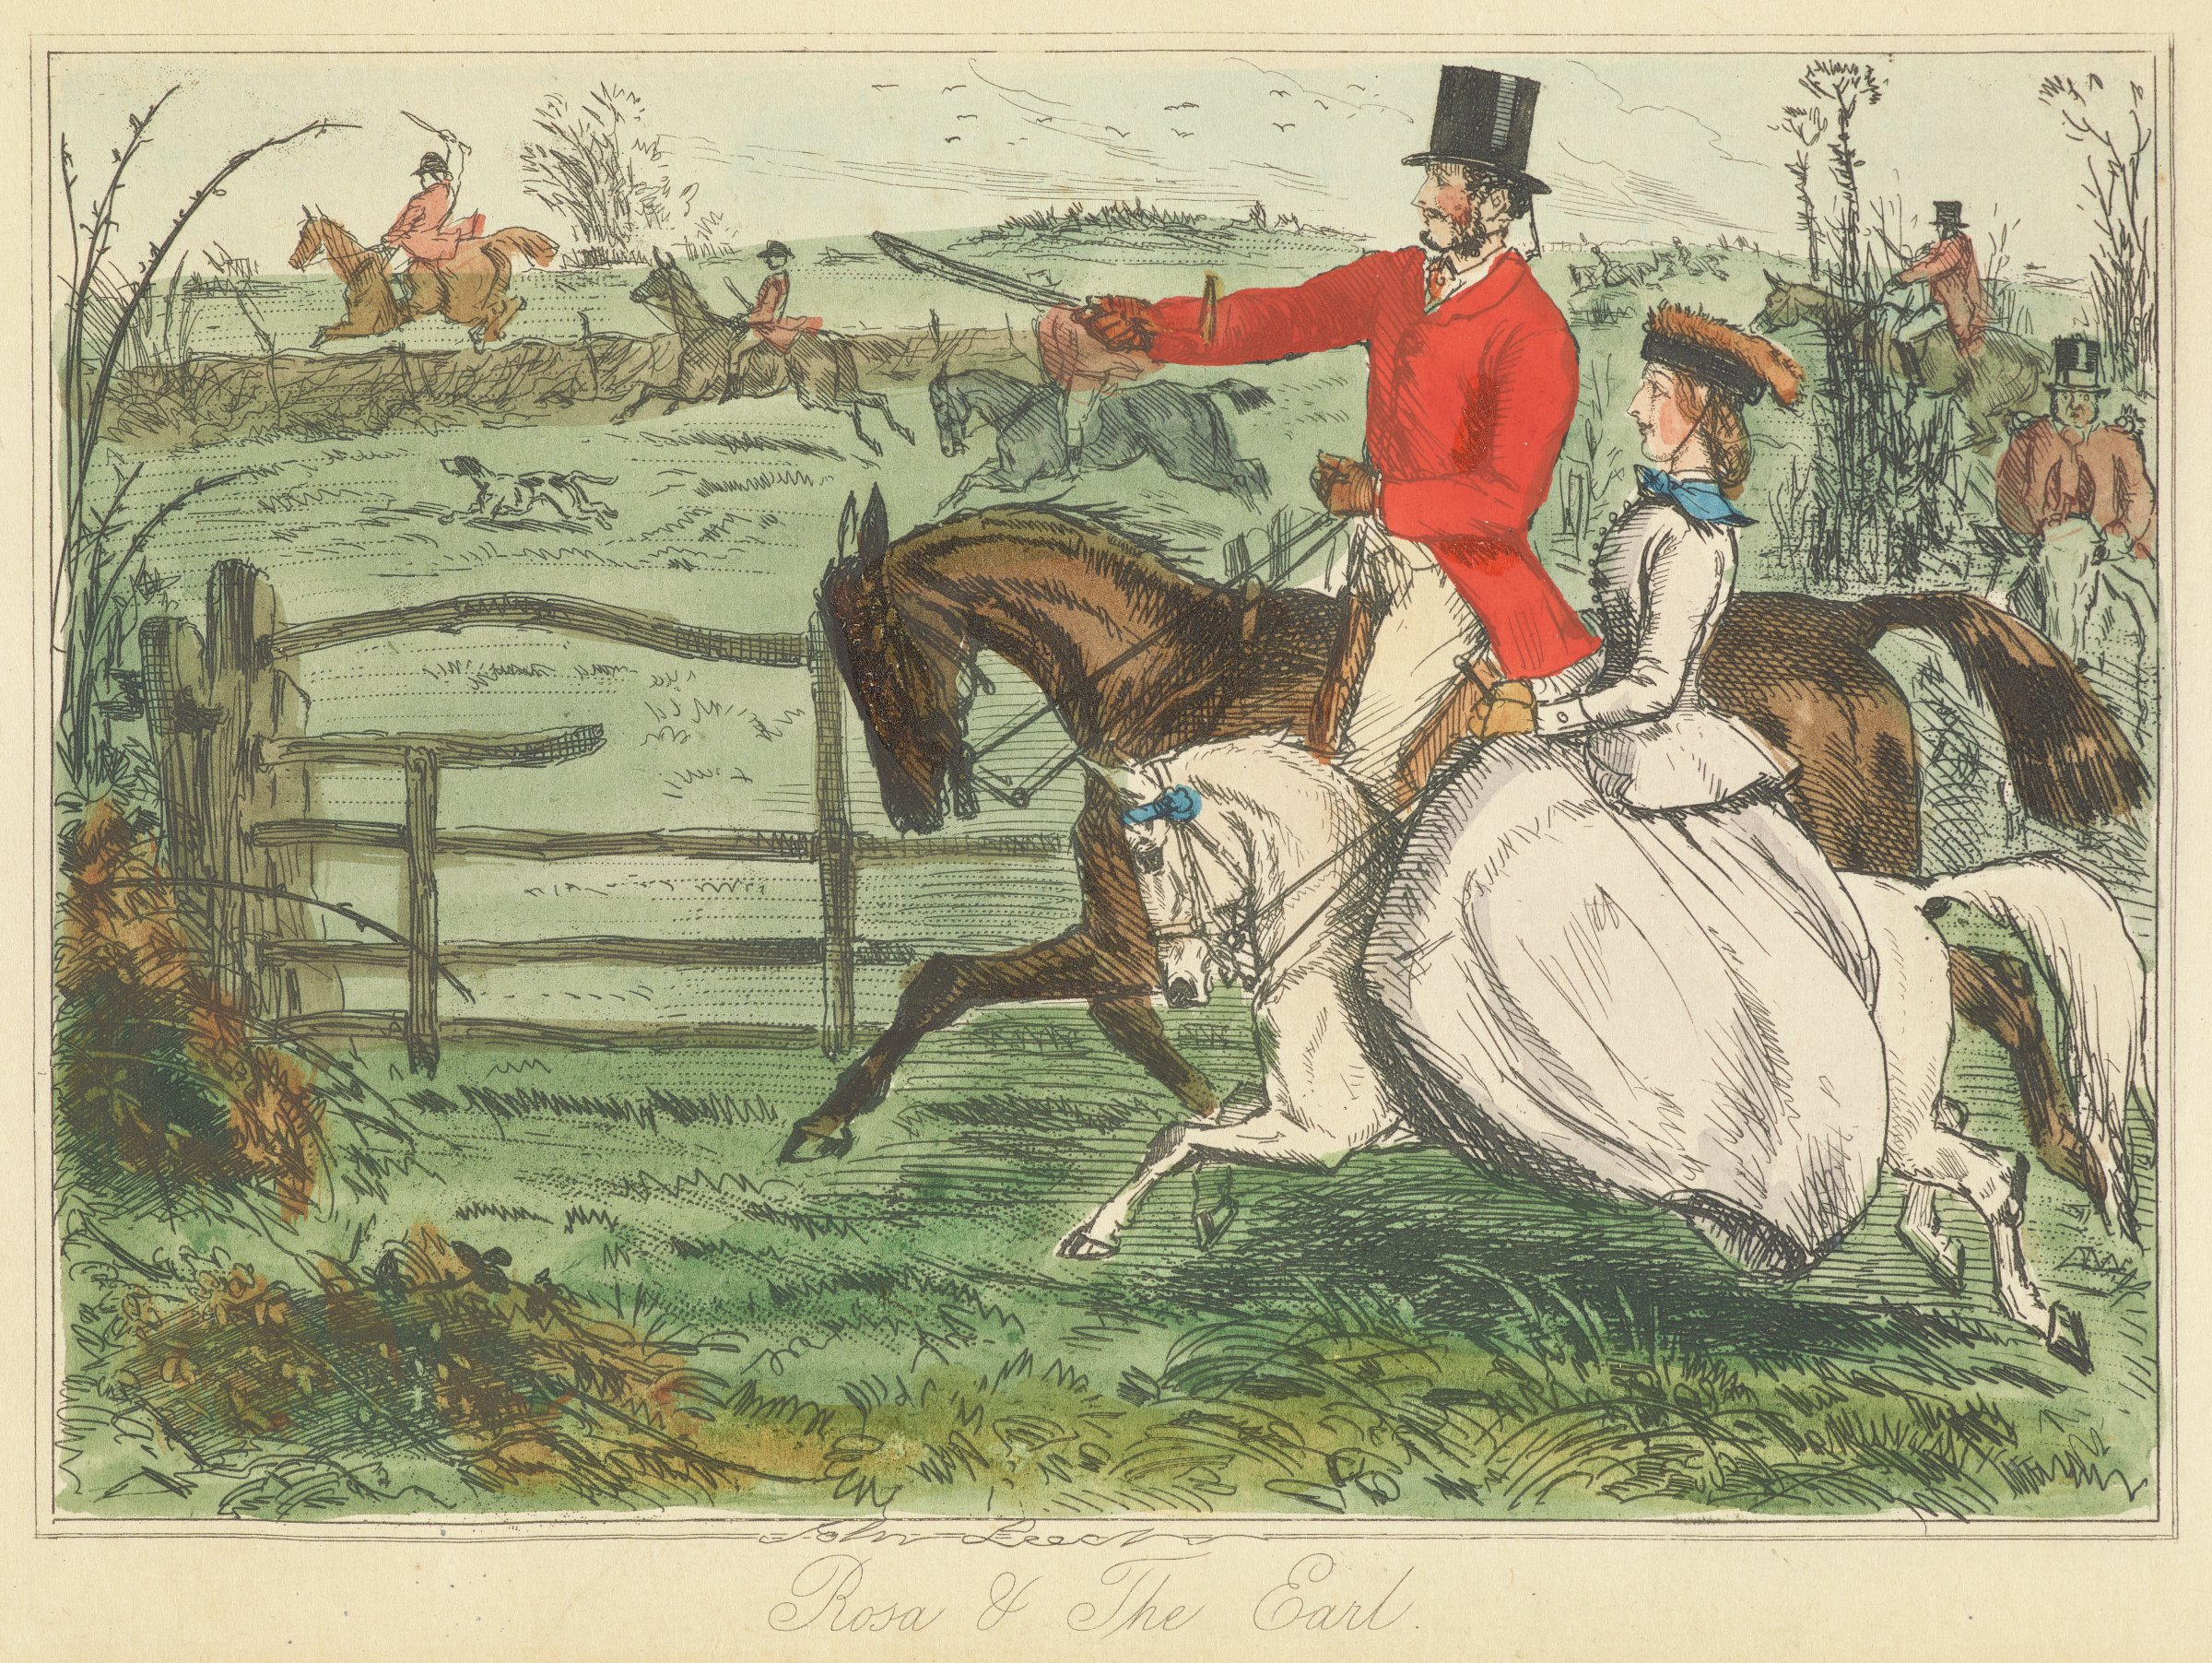 In the foreground, a gentleman in a red coat and black hat rides a brown horse next to a lady in a white dress riding a white horse. The horses run alongside a wooden fence. In the background, multiple gentleman riding horses are seen.